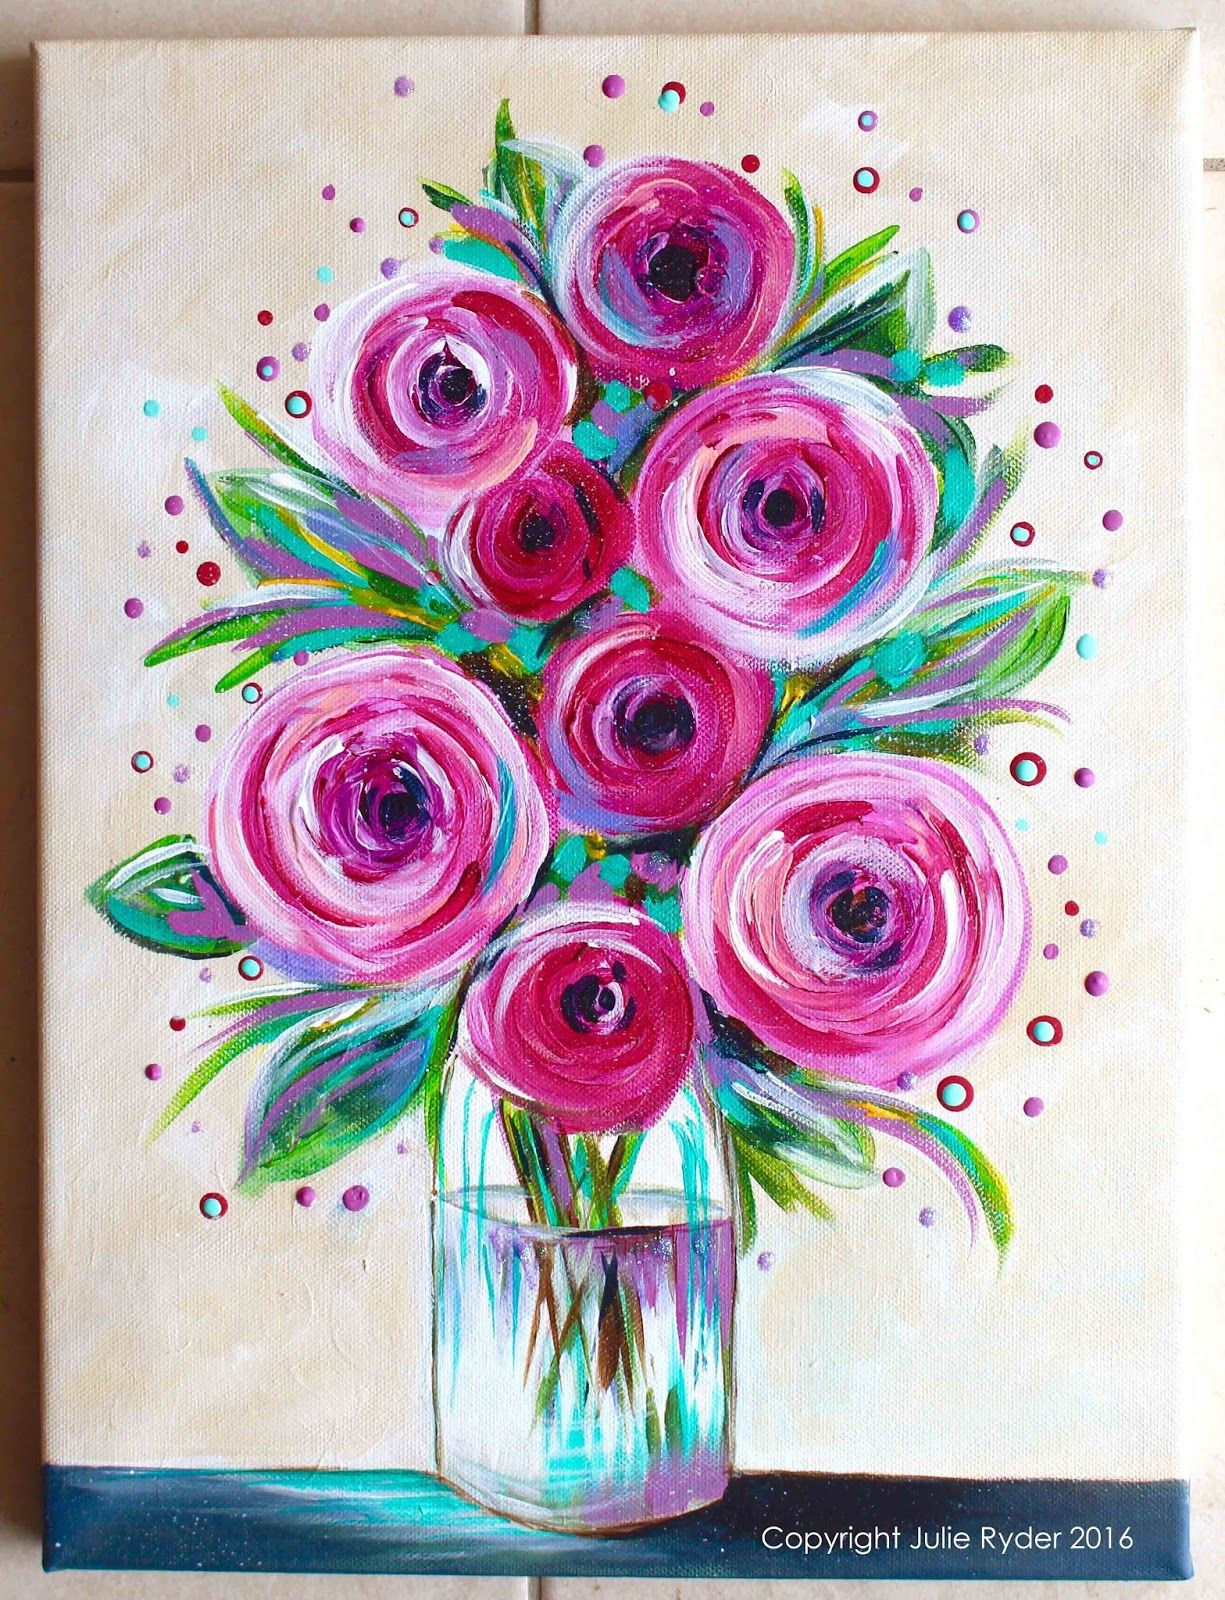 Julie Ryder Flowers And Swirls. Paint Sip Night In 2019 Art Painting